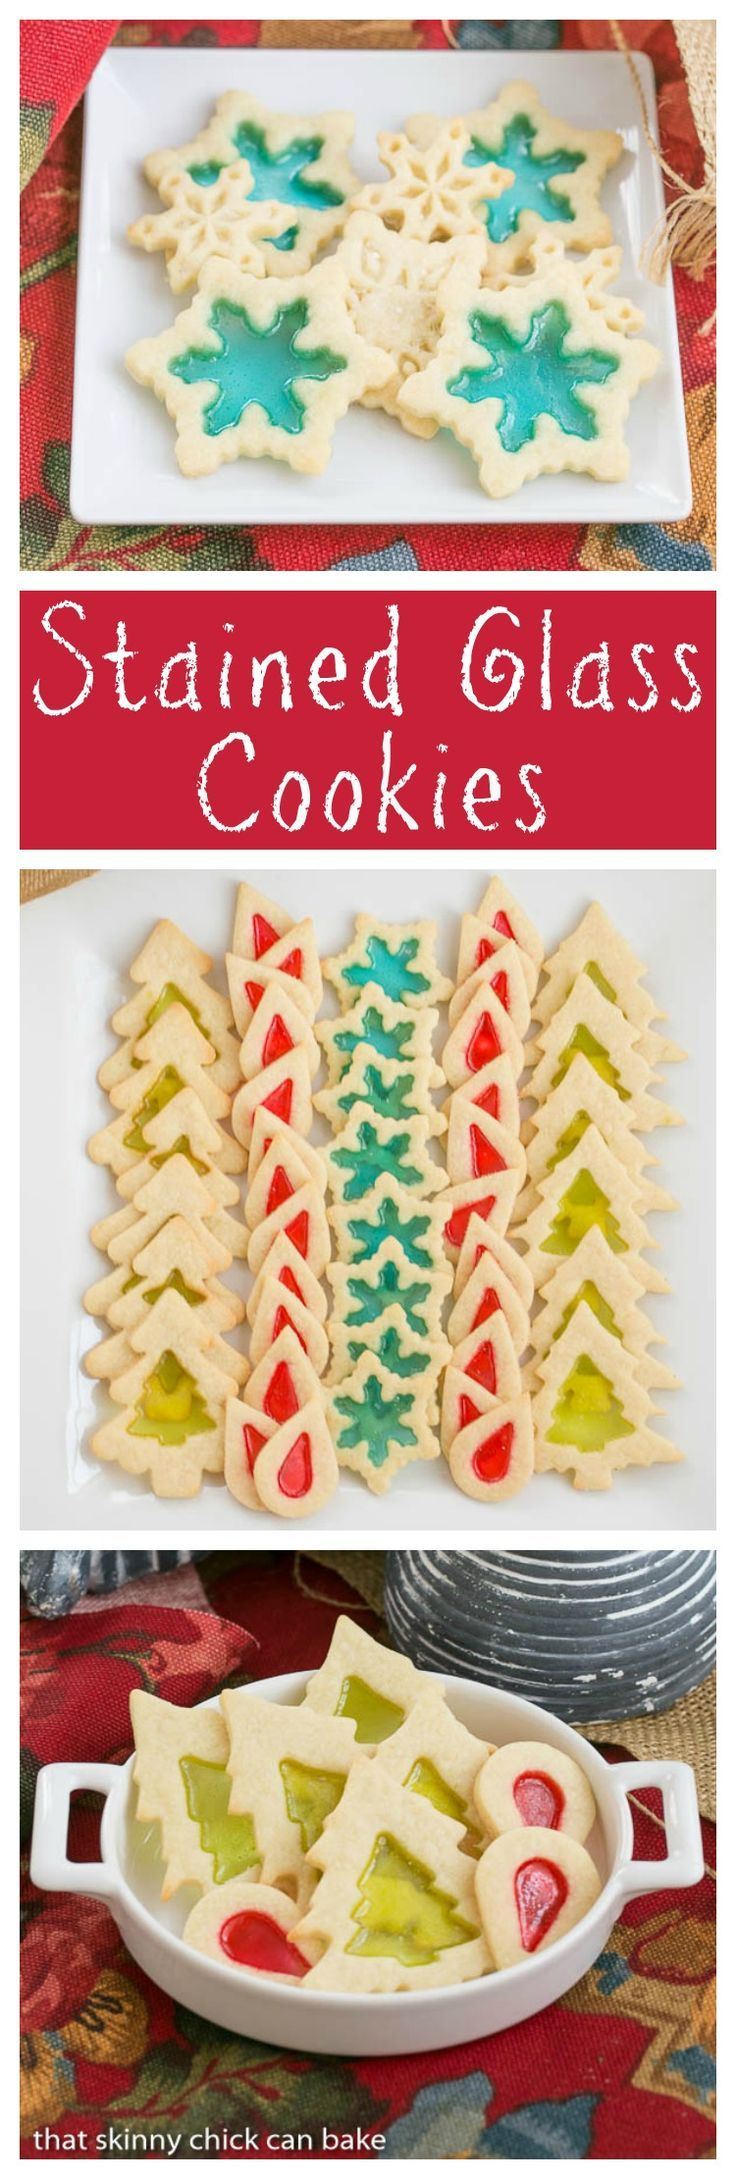 Stained Glass Cookies |Adding a little crushed candy to your sugar cookies makes for a fabulous holiday cookie! thatskinnychickcanbake.com @lizzydo